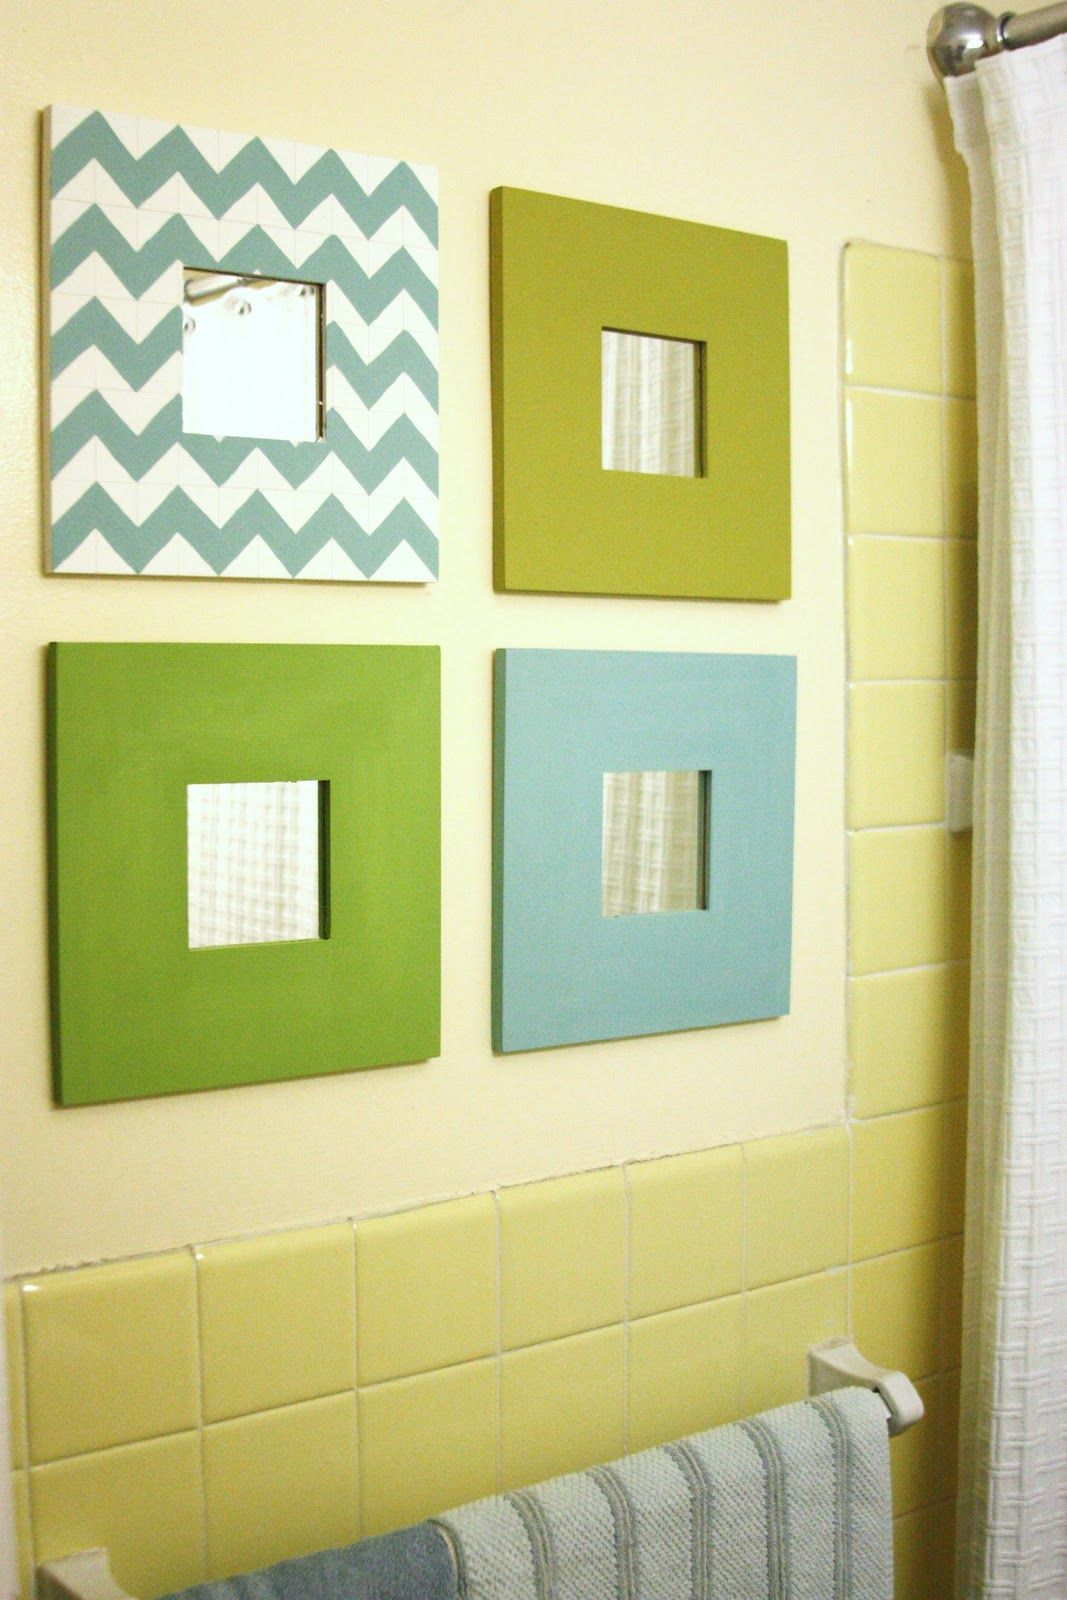 These are Malma mirrors (inexpensive!) from IKEA which this dweller ...